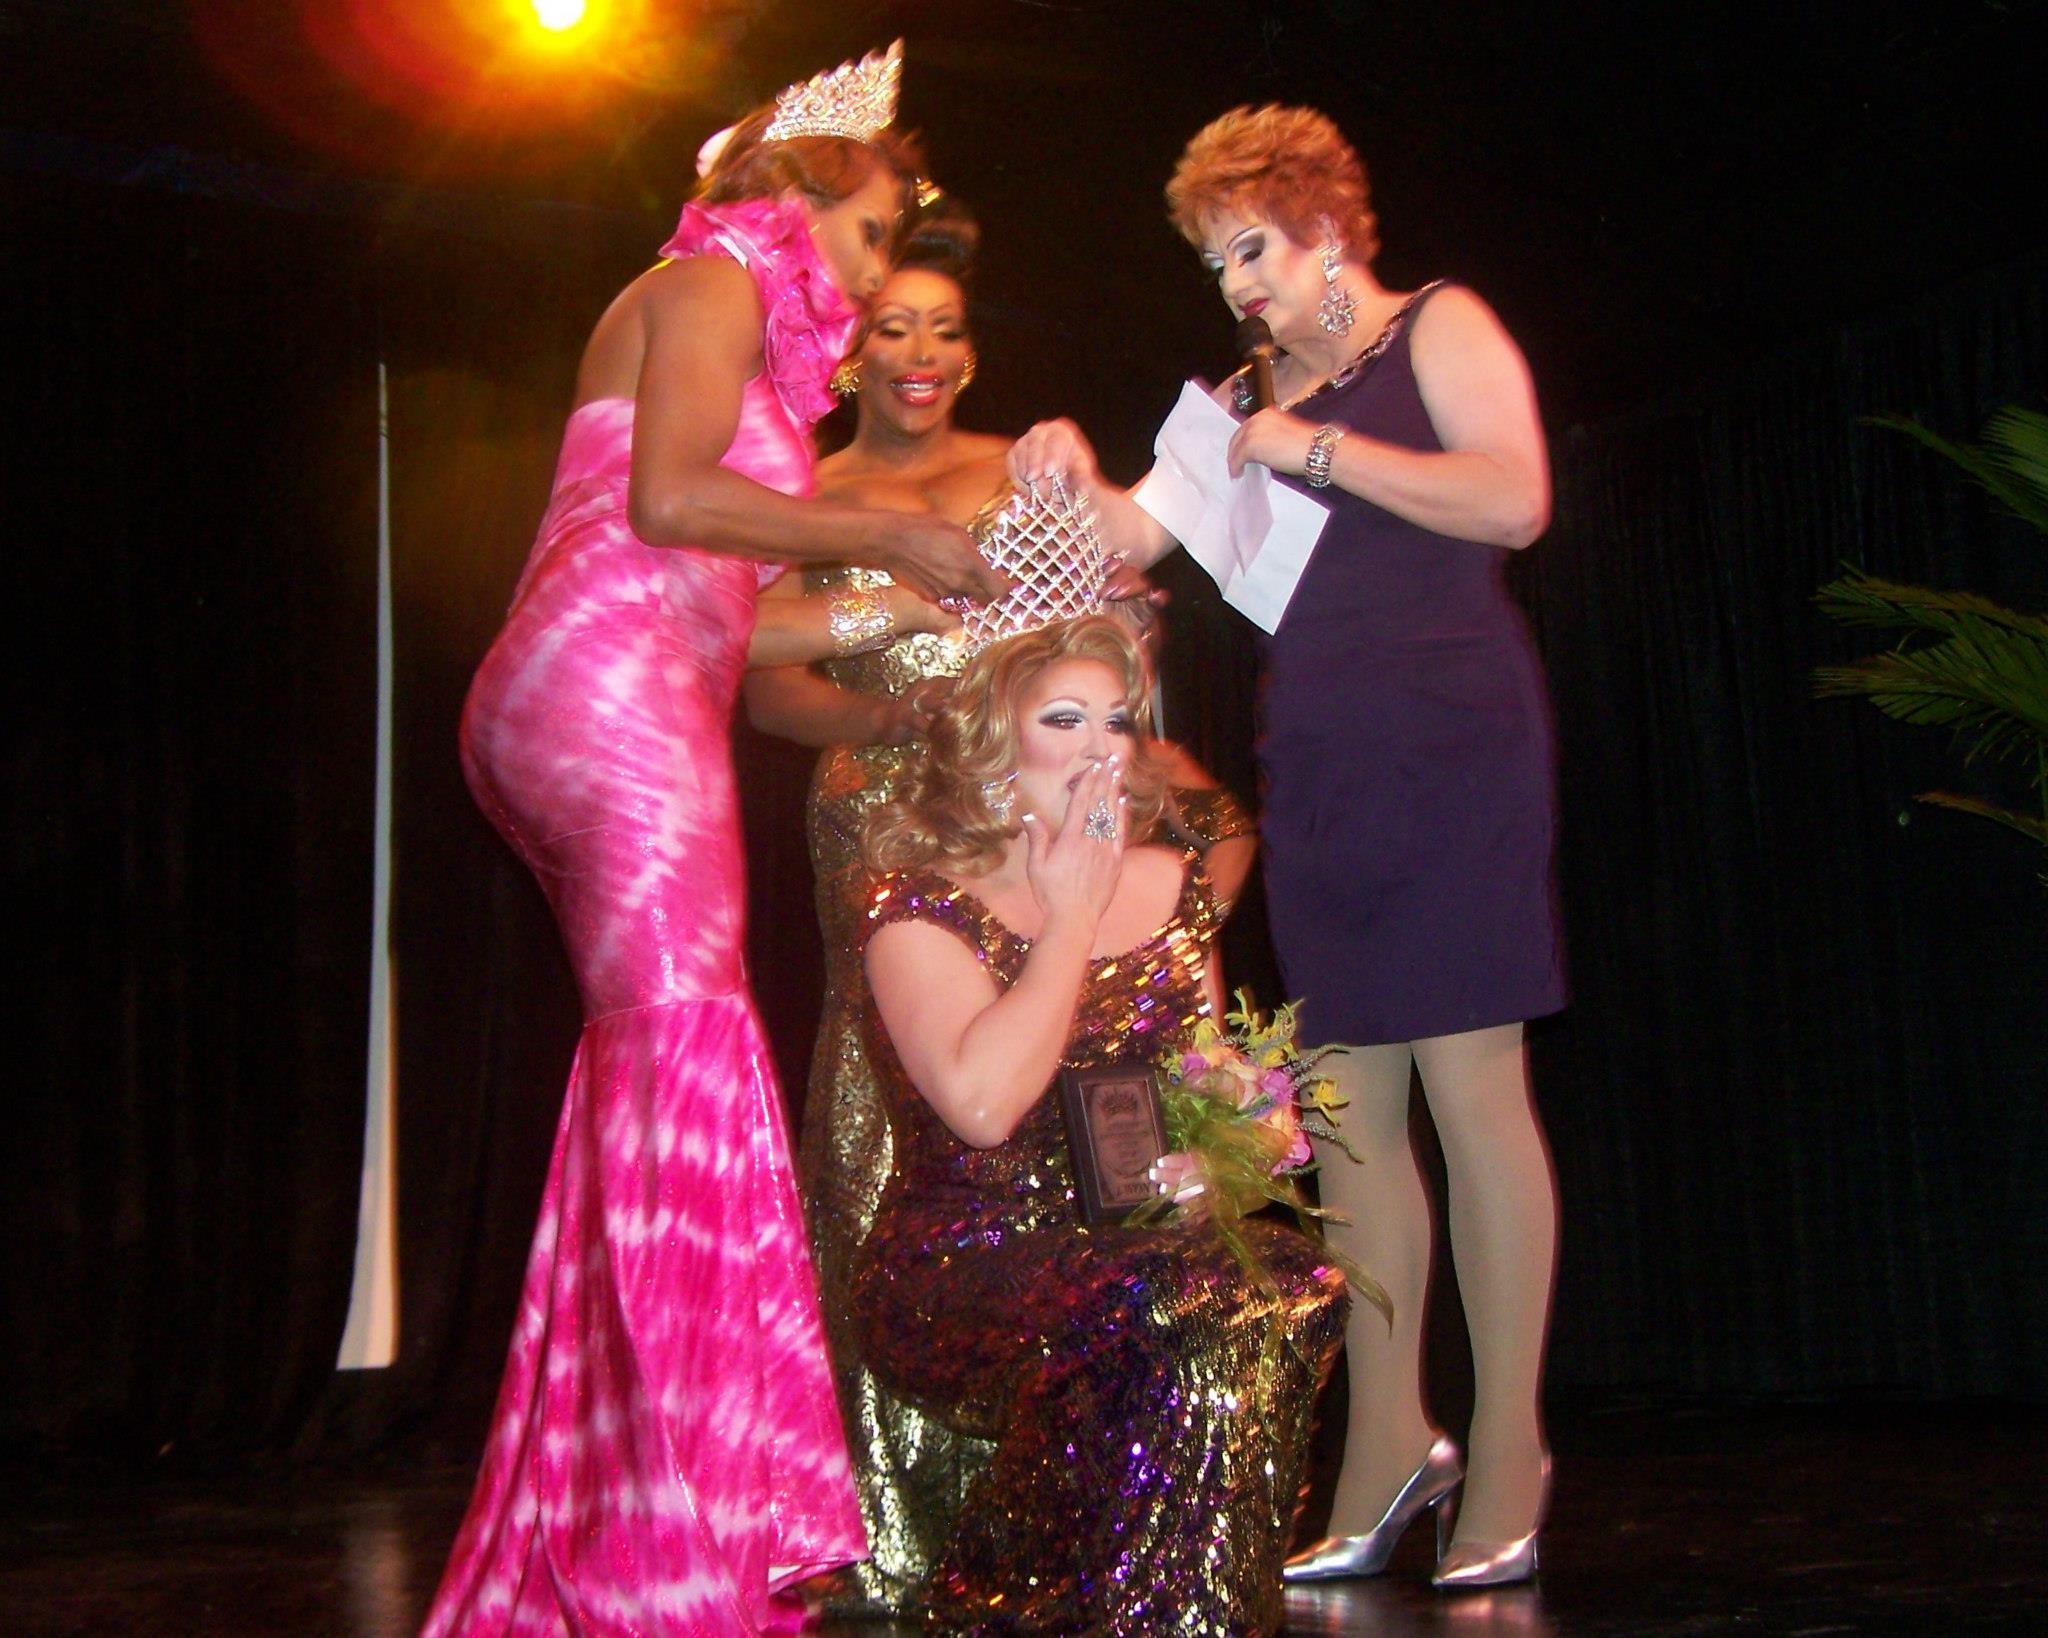 Tajma Stetson being crowned  Missouri Entertainer of the Year, F.I. 2013 at the Sheldon Concert Hall in St. Louis, Missouri. on the night of November 11th, 2012.  Standing left to right: are Alexis Principle, Mokha Montrese and Michelle McCausland.